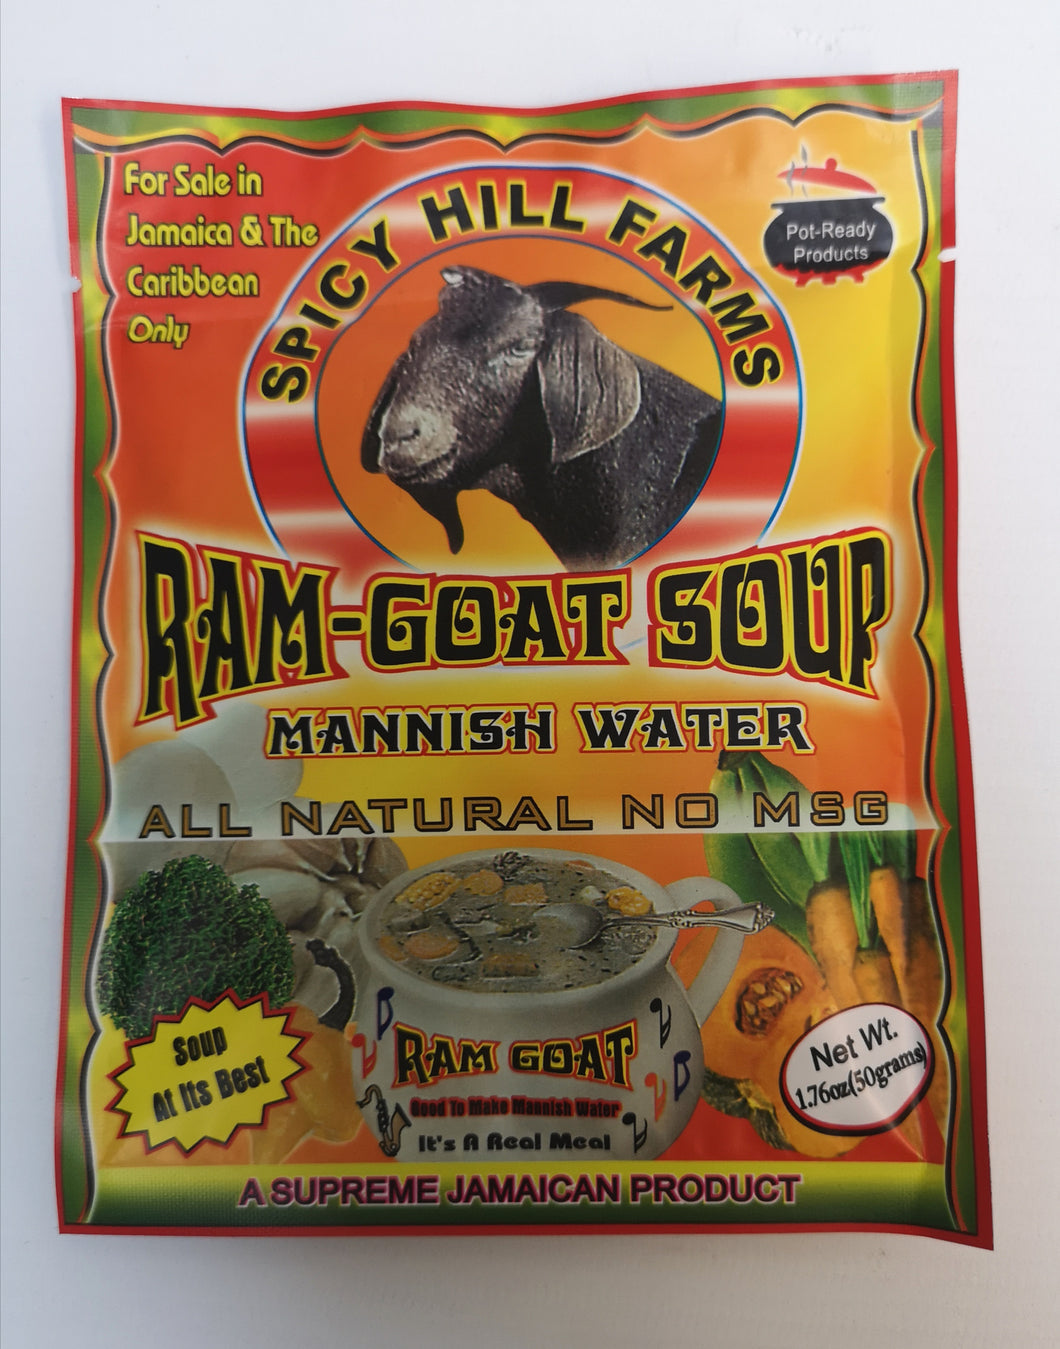 Spicy Hill Farms Ram-Goat Soup